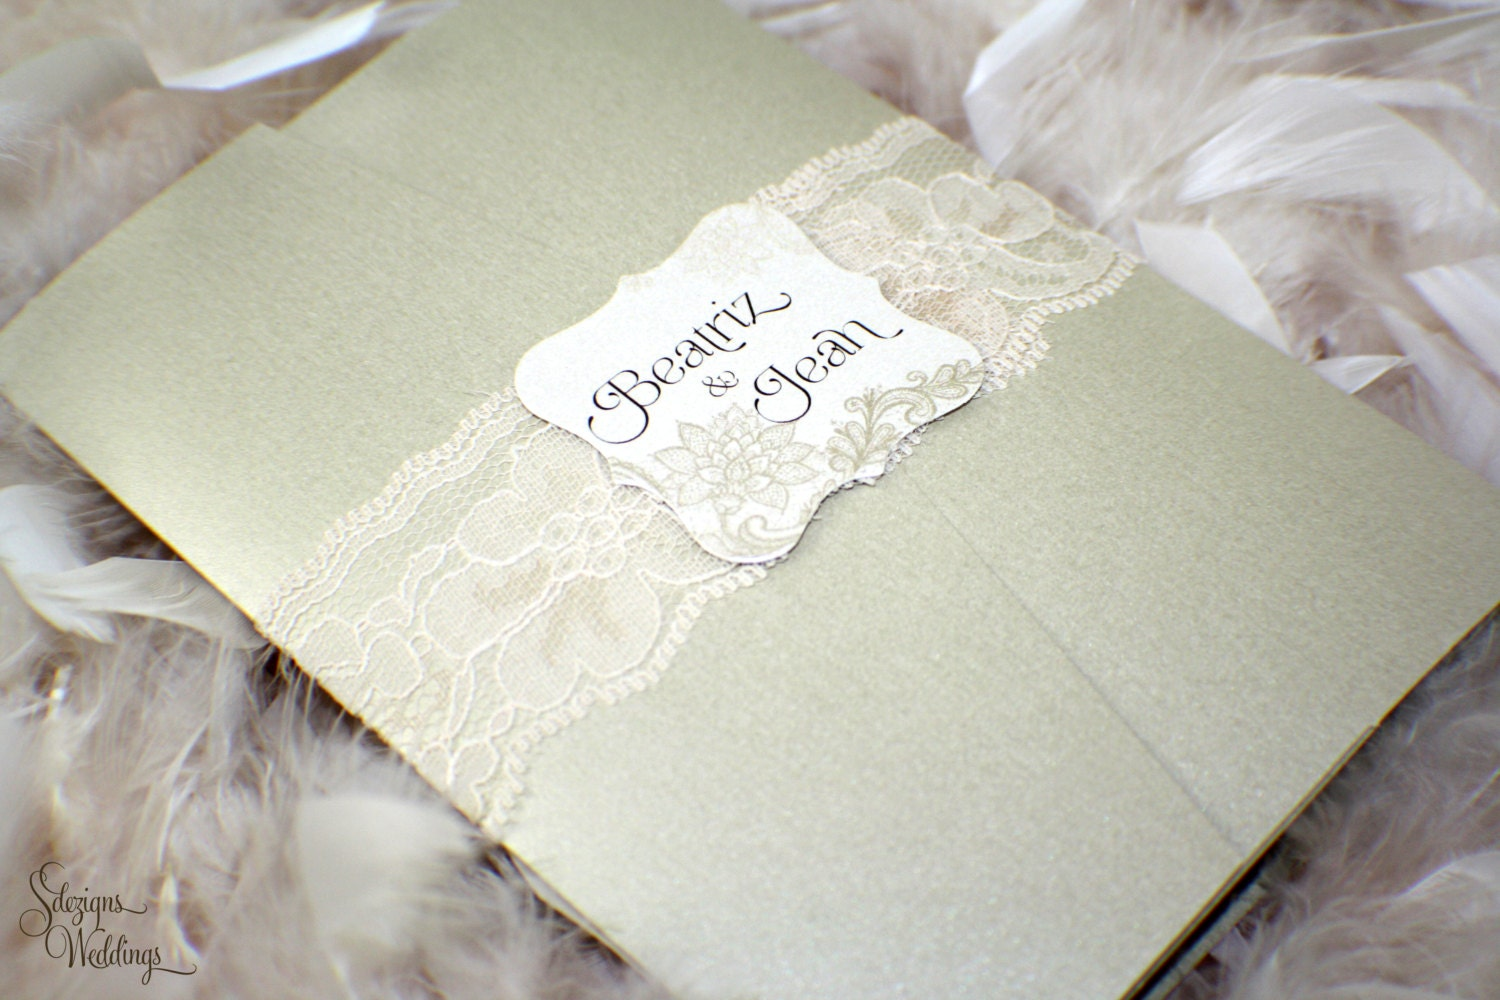 Gorgeous Wedding Invitations: Beautiful Lace Wedding Invitations By SDezigns On Etsy